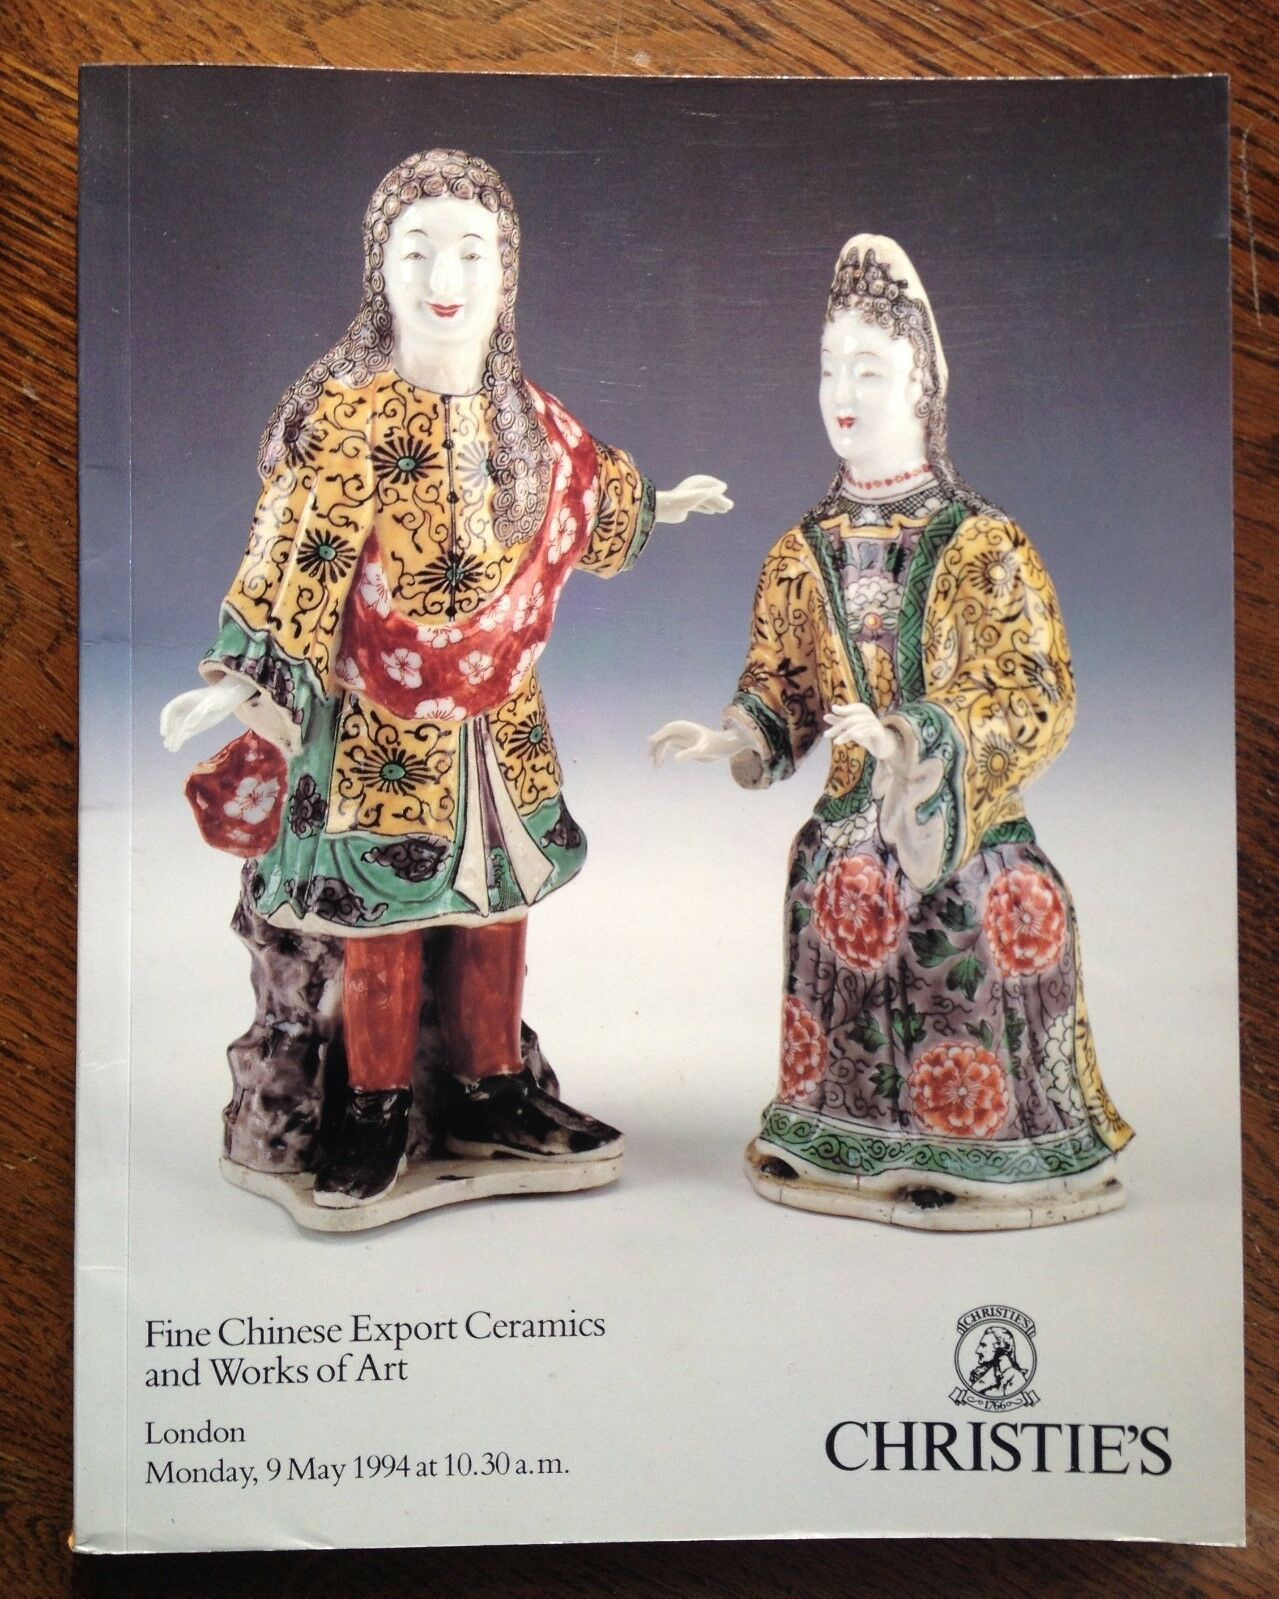 Christie's Fine Chinese Export Ceramics and Works of Art 1994 London Catalog